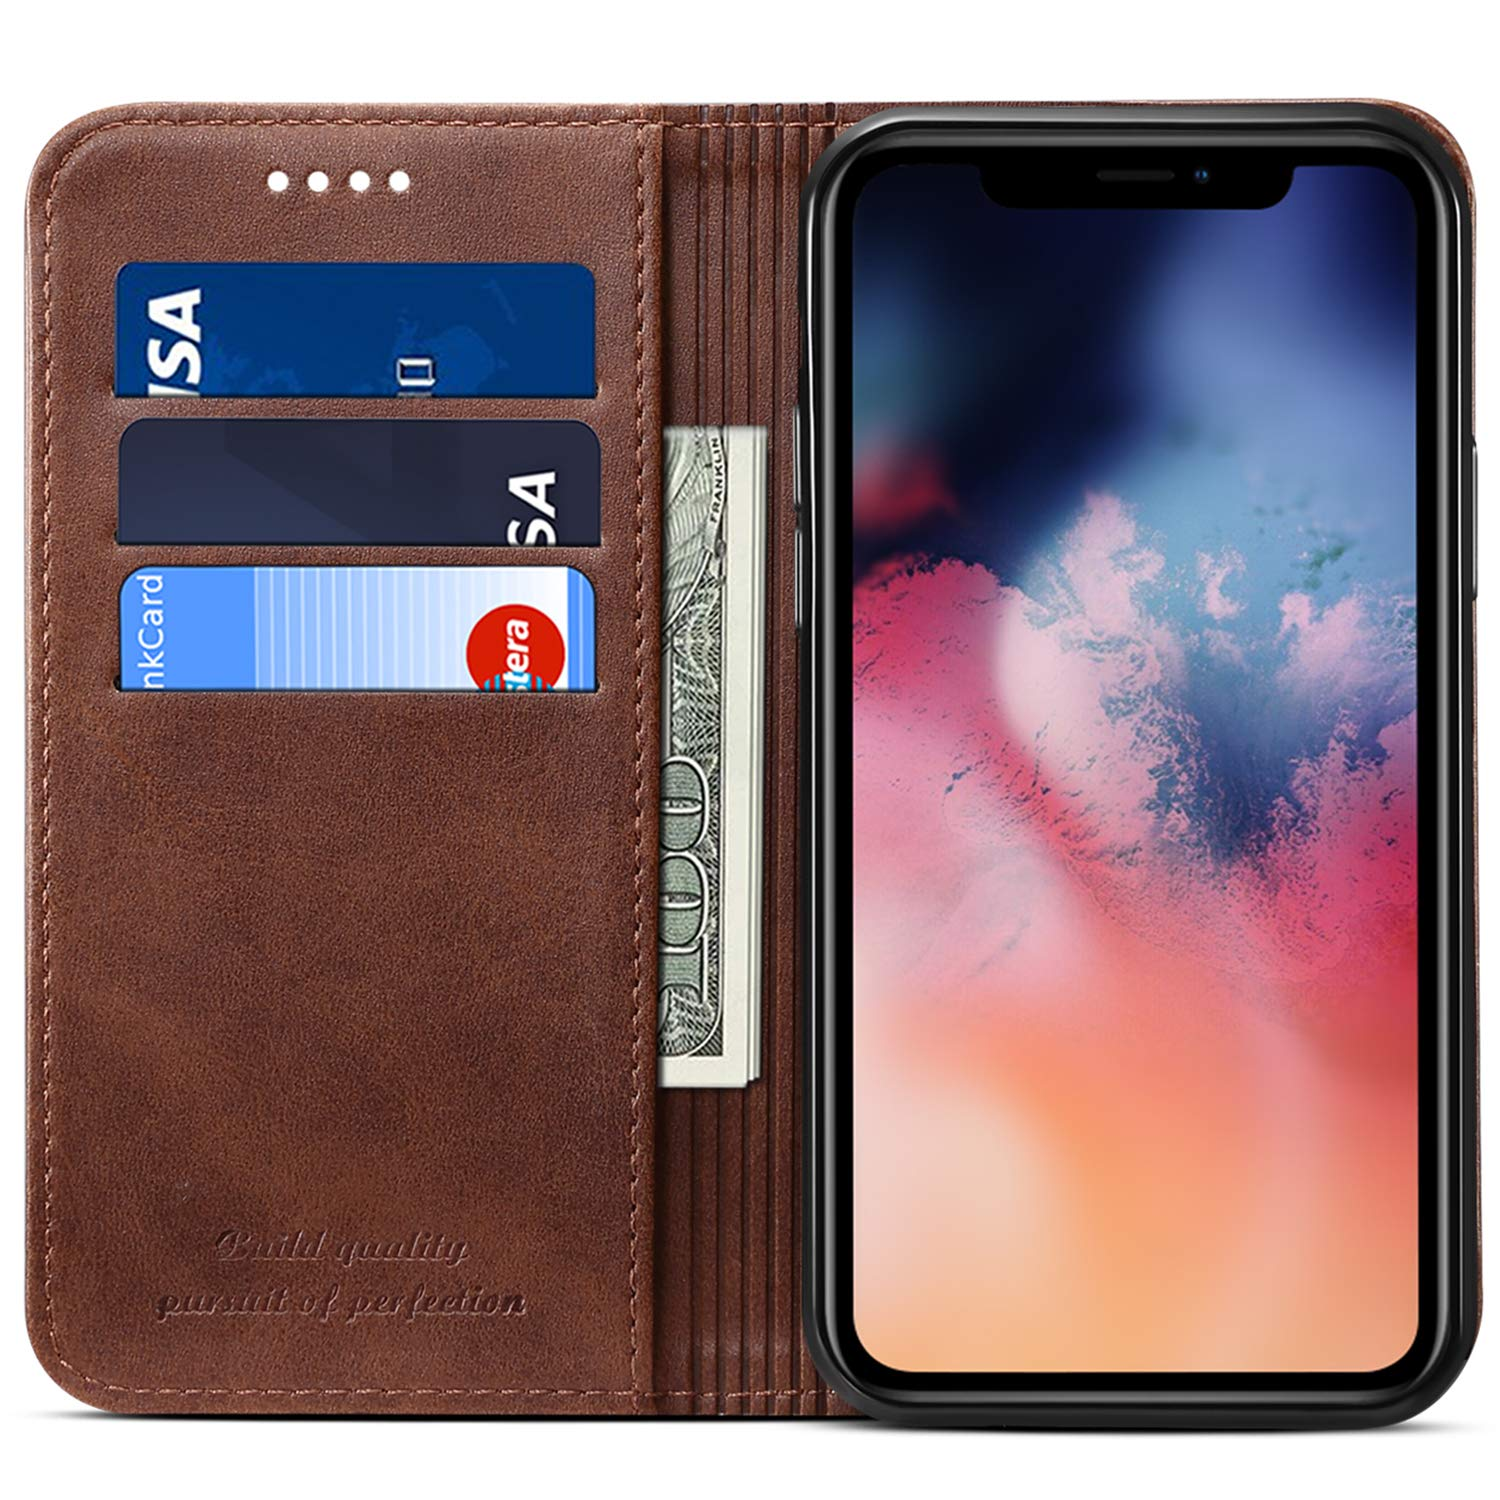 iPhone 11 Pro Leather Folio Case